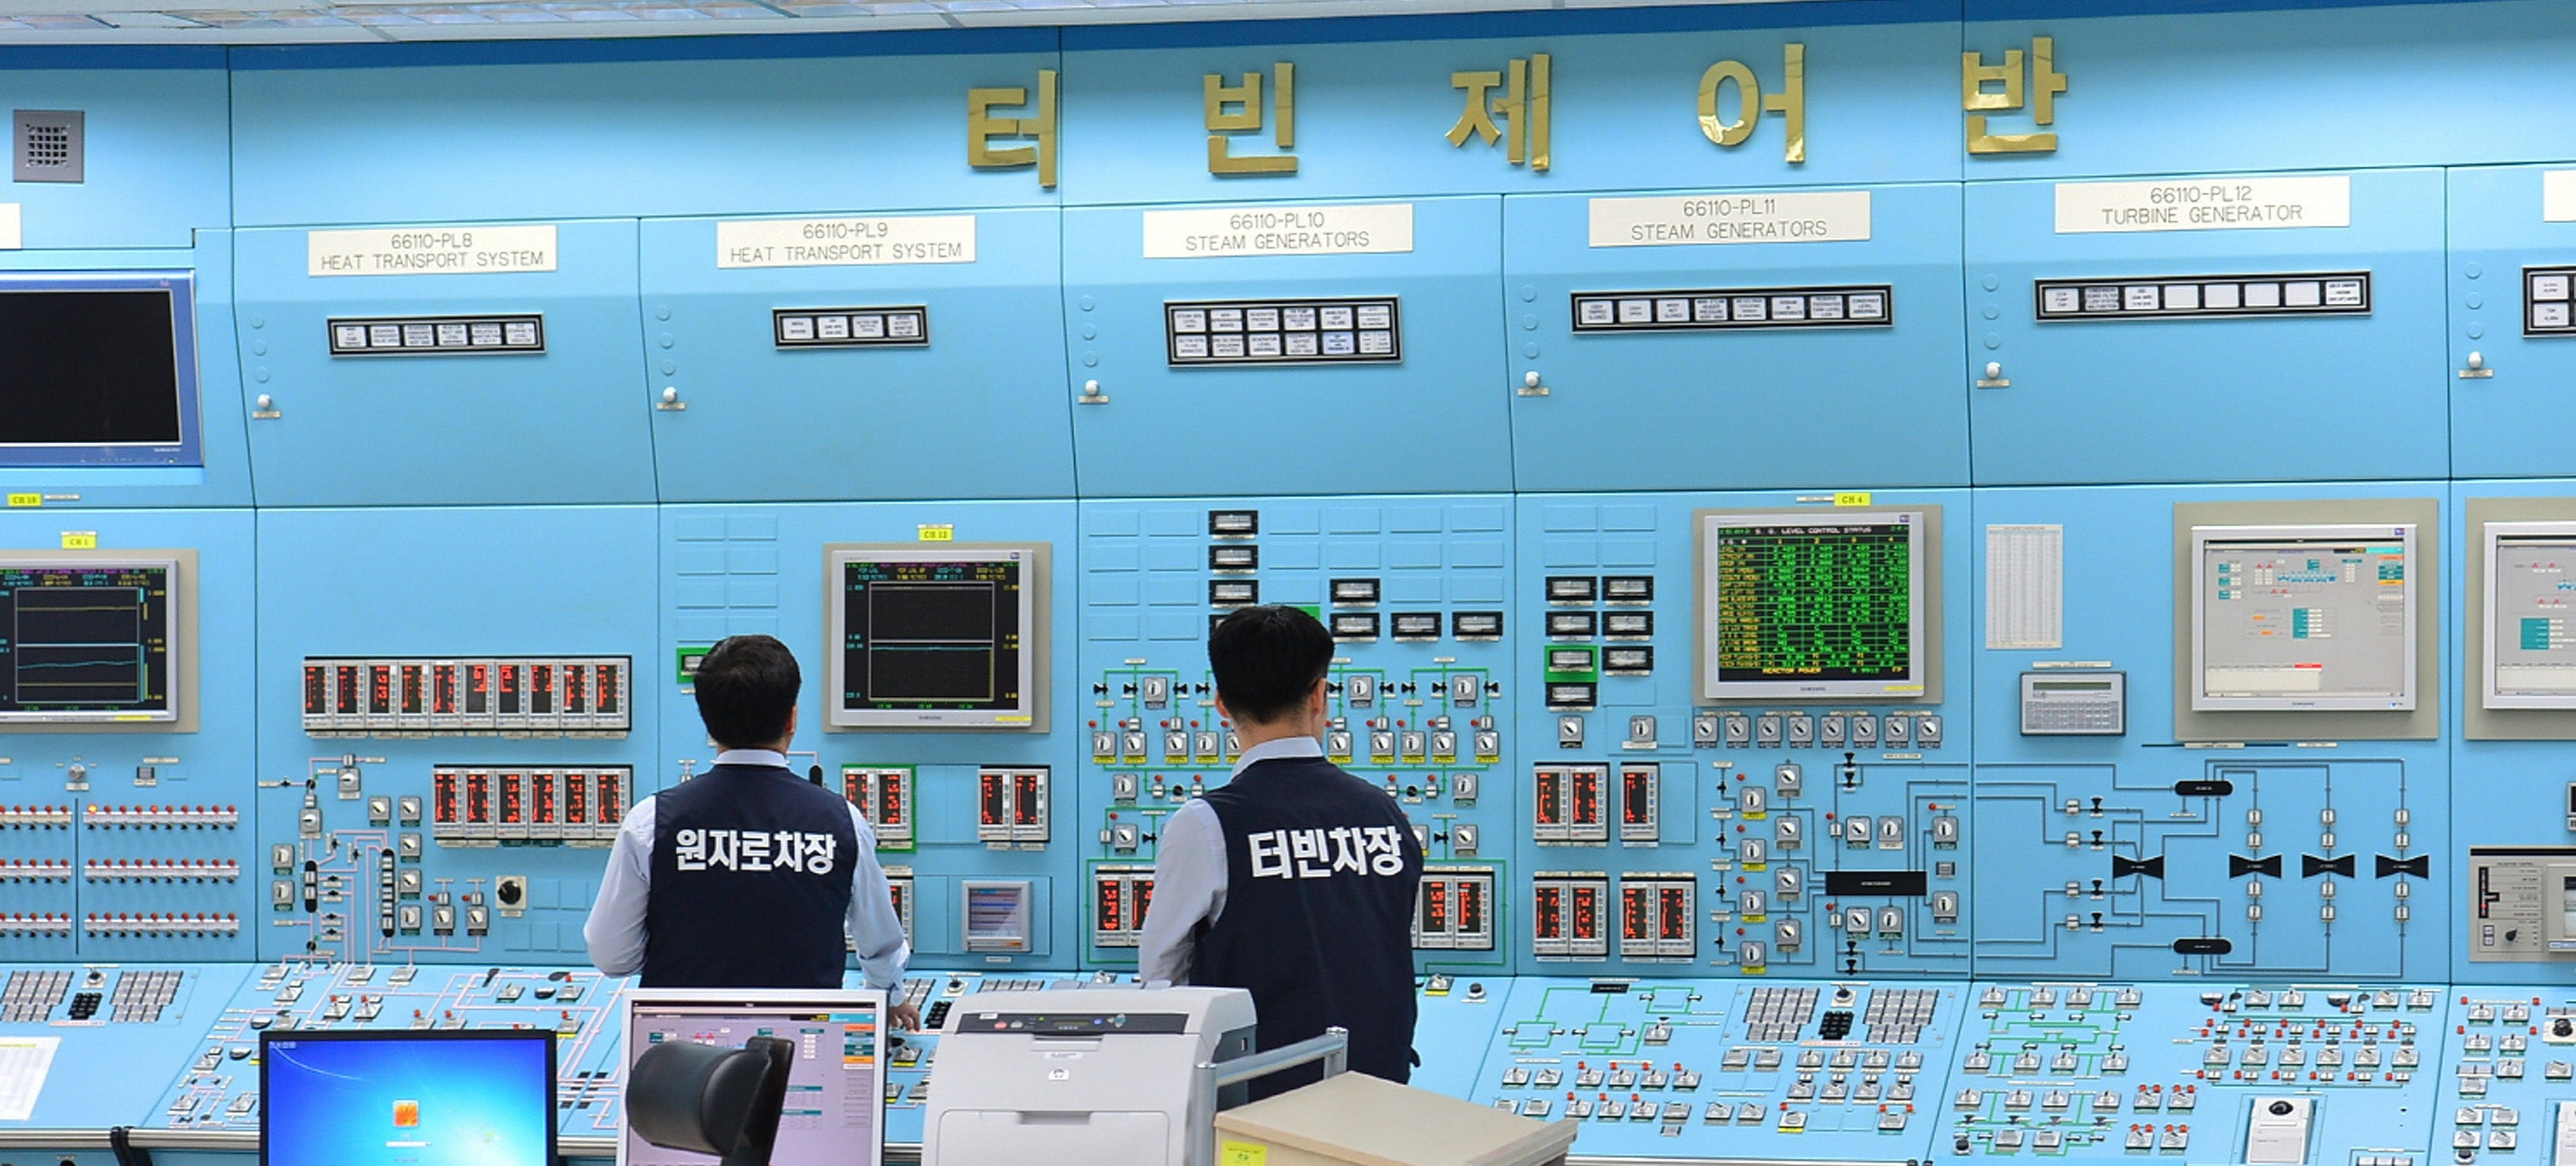 Hackers Uploaded a Worm to South Korean Nuclear Plants